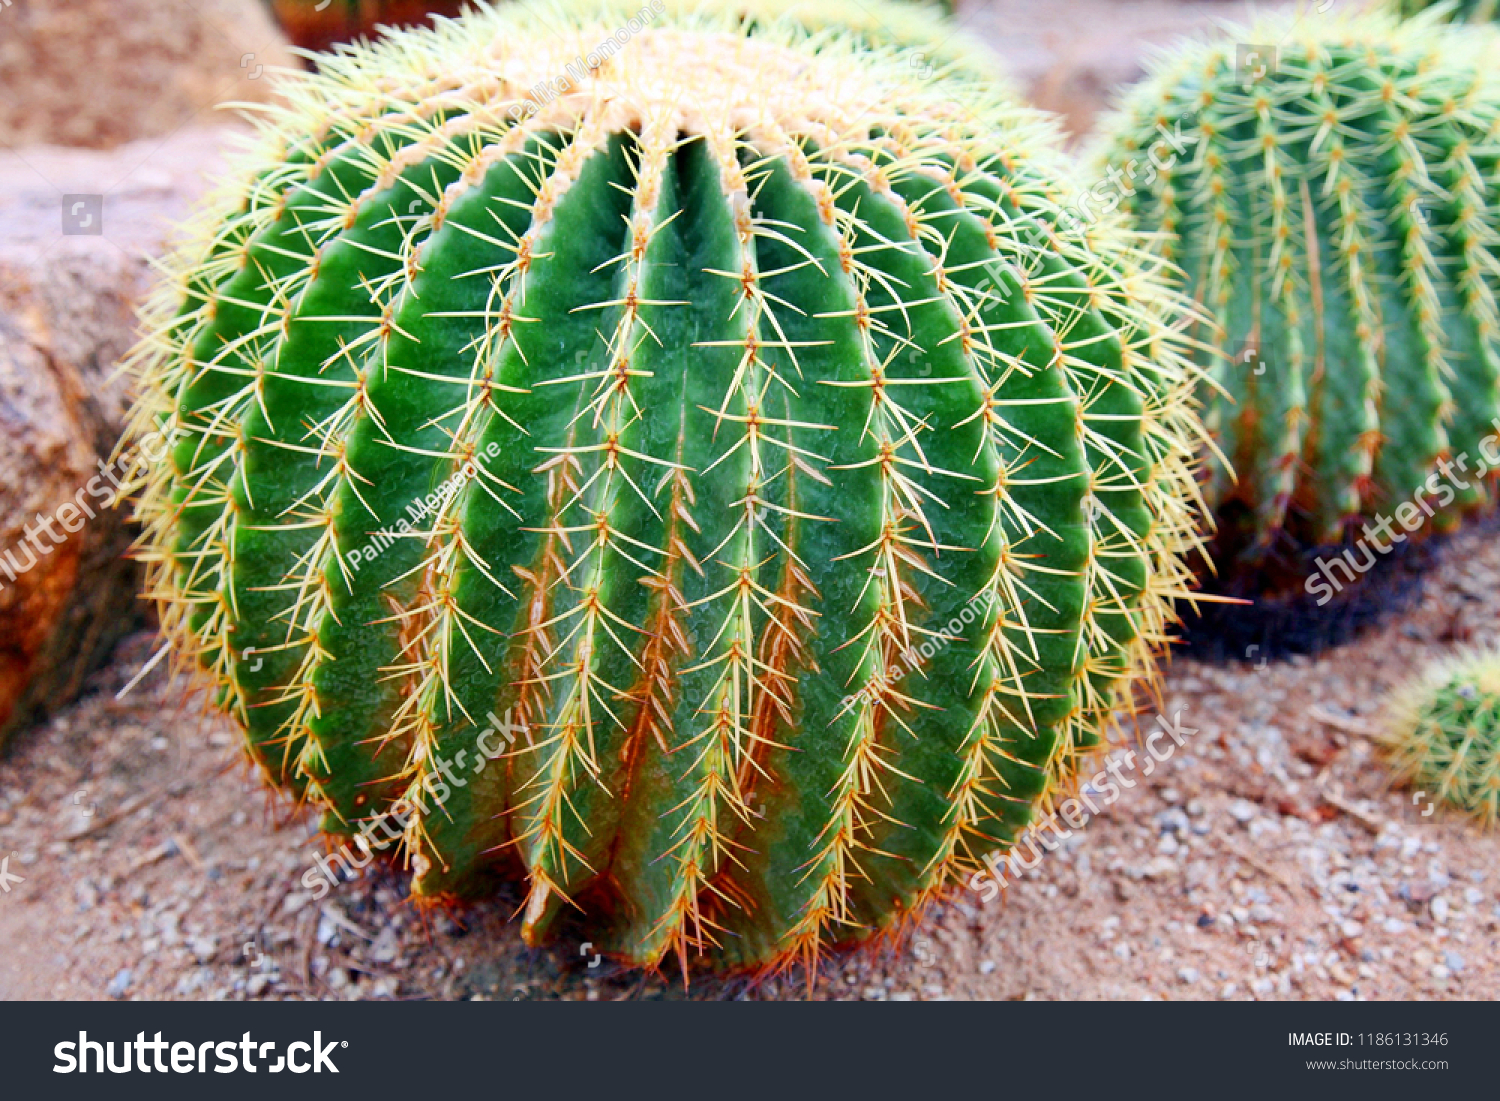 Golden Barrel Cactus Cactusplants Desert Plants Stock Photo Edit